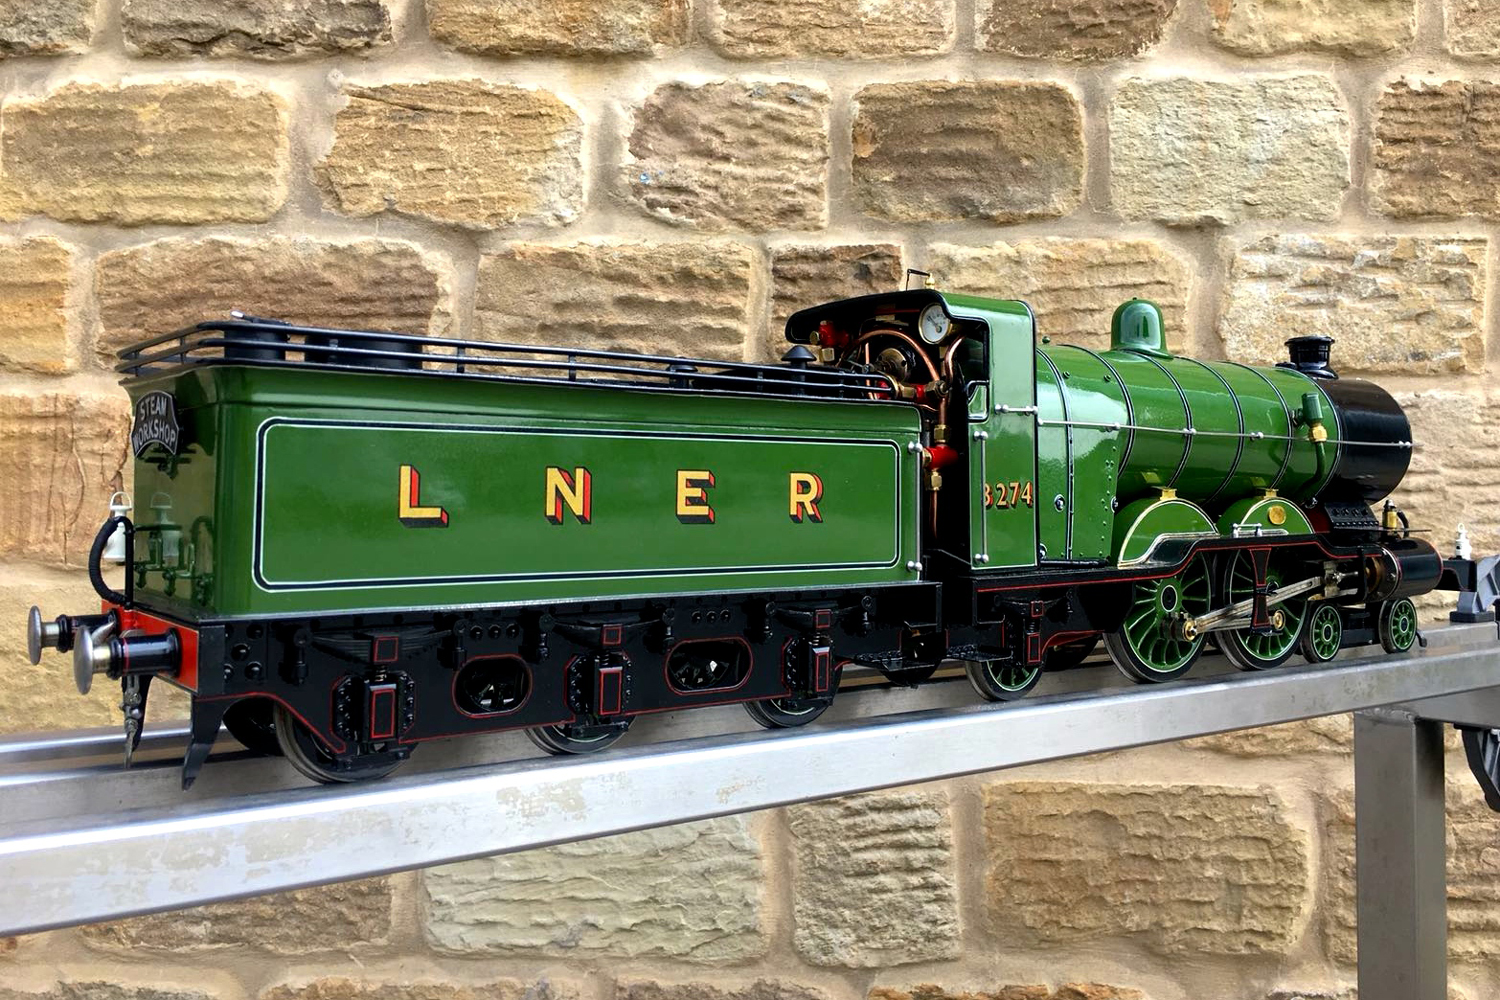 test 2-and-a-half-inch-gauge-3-GNR-C1-Atlantic-Ayesha-live-steam-locomotive-for-sale-02